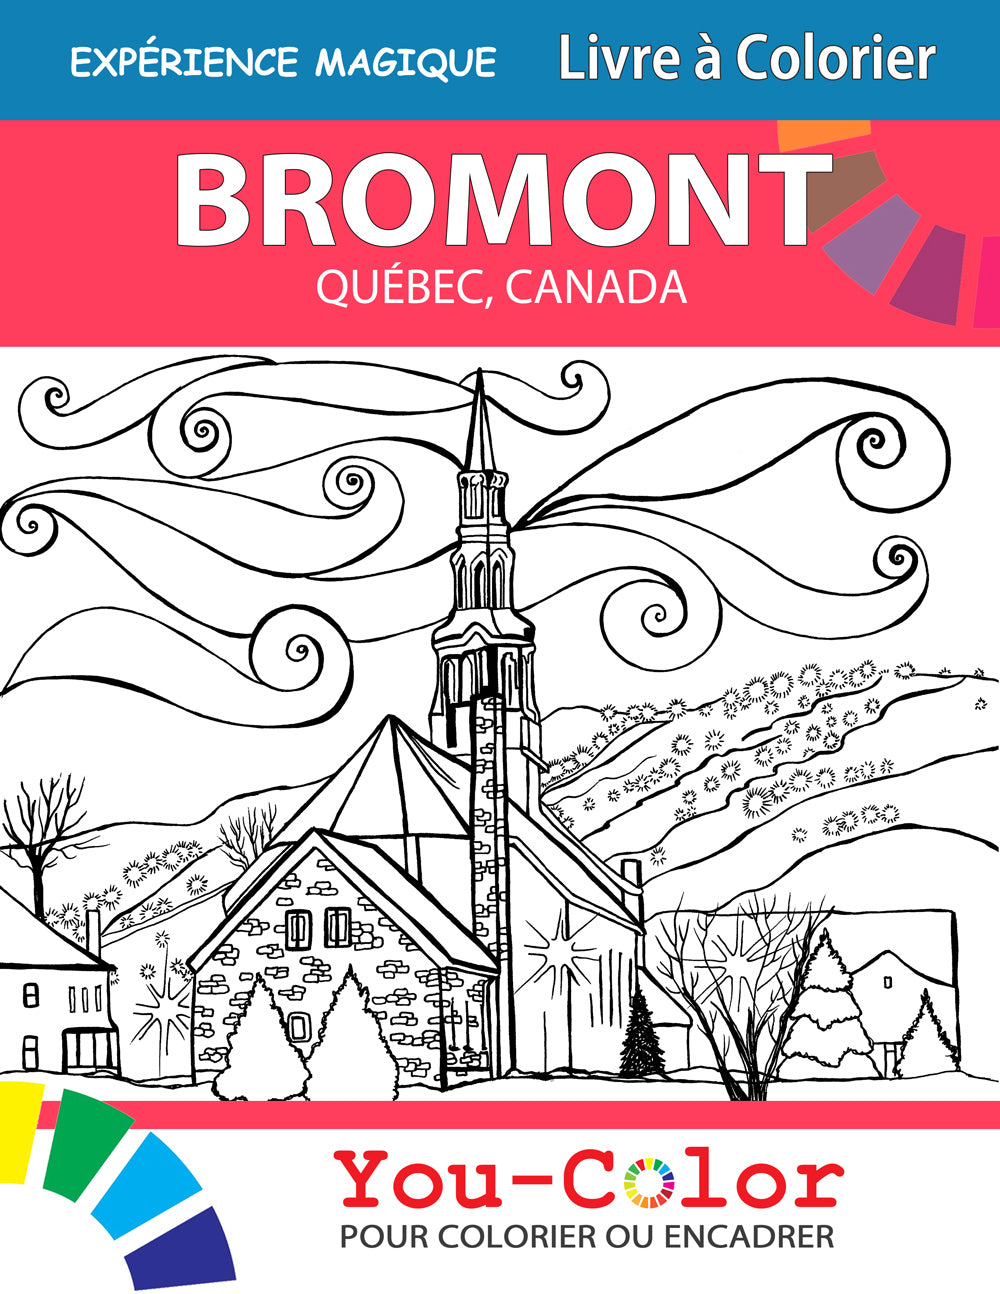 Bromont Livre à colorier: Bromont, Magical Places Coloring Book - 2nd Edition - Bilingual - You-Color